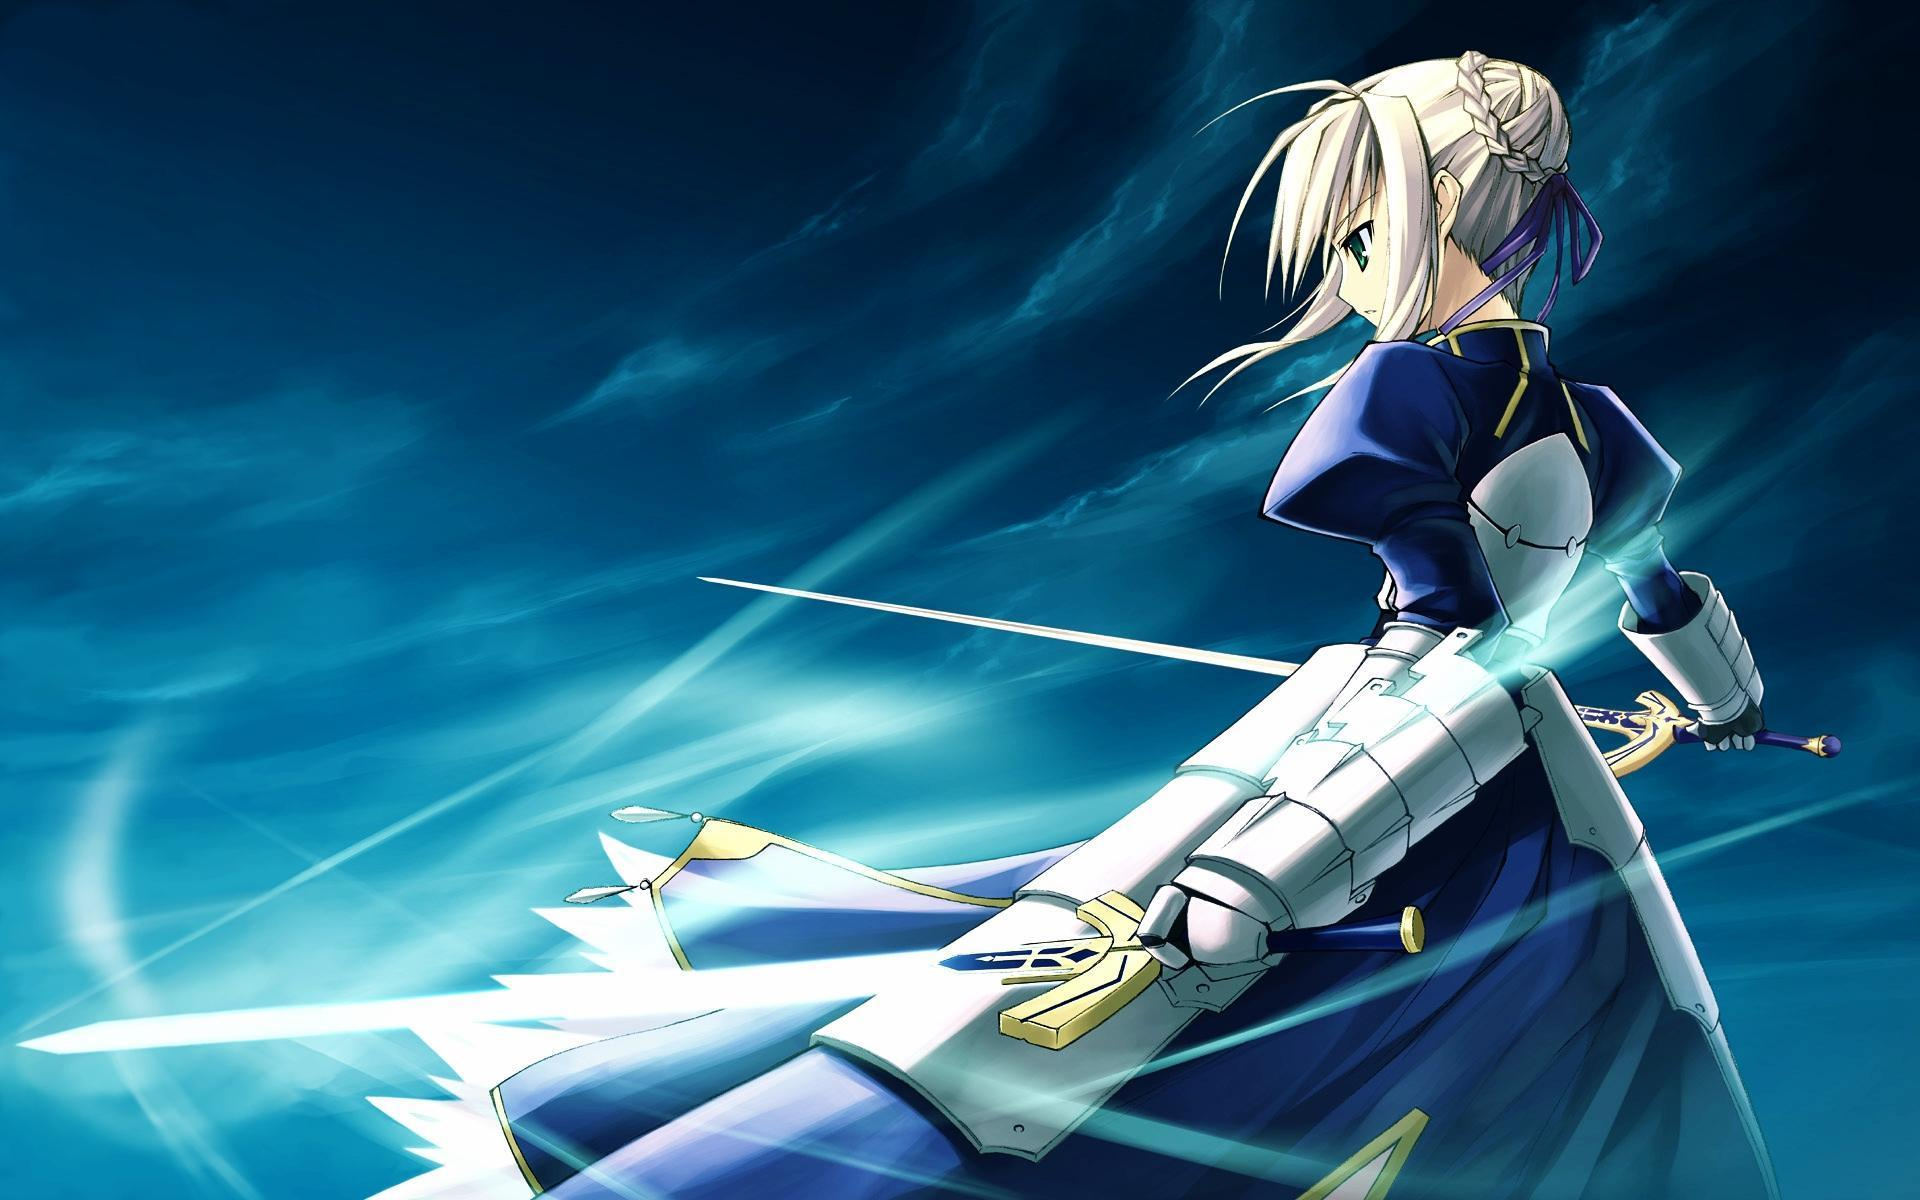 anime blue saber ndash - photo #15